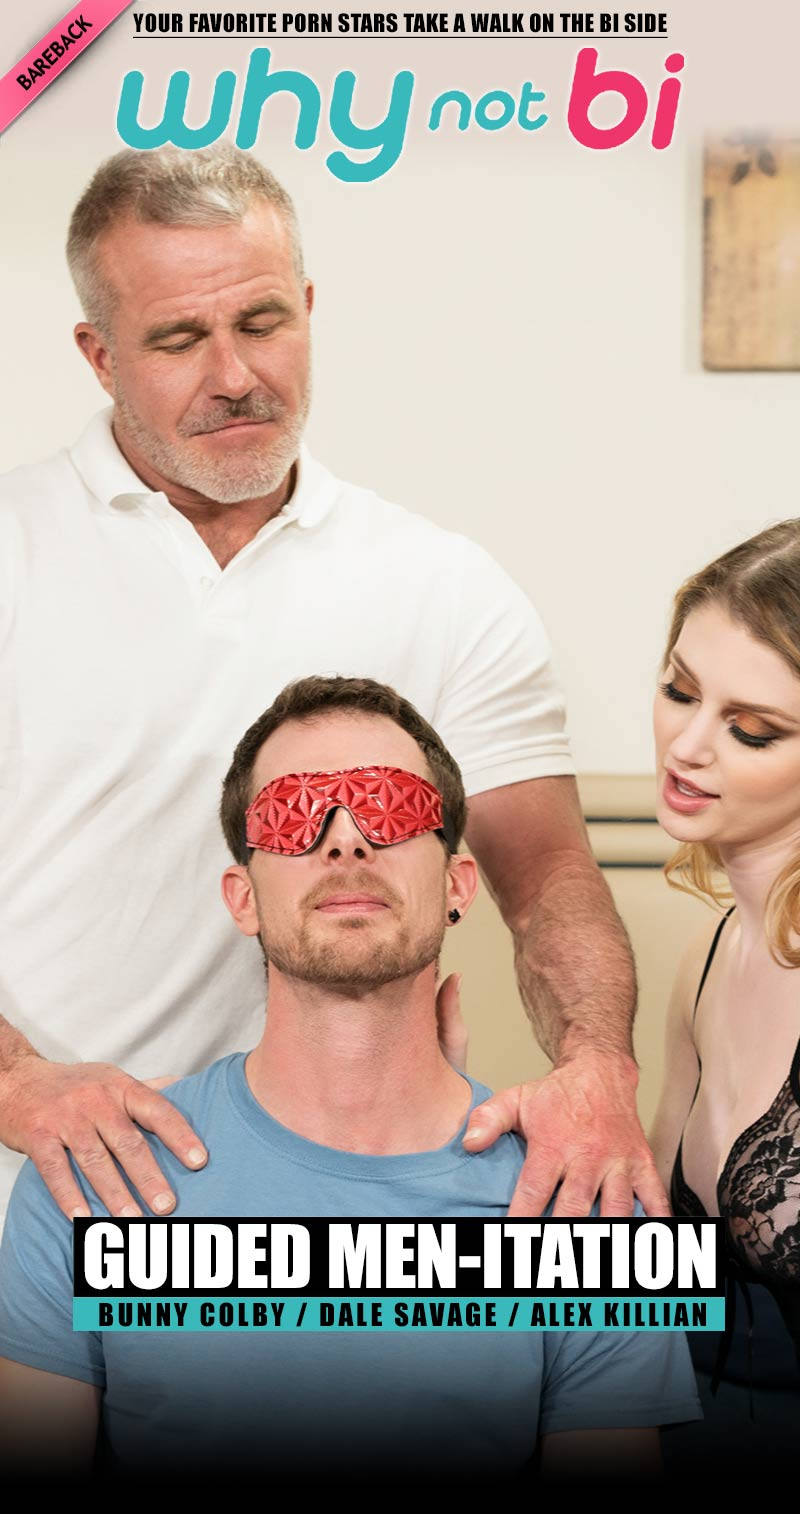 Guided Men-itation (Dale Savage, Alex Killian and Bunny Colby) at WhyNotBi